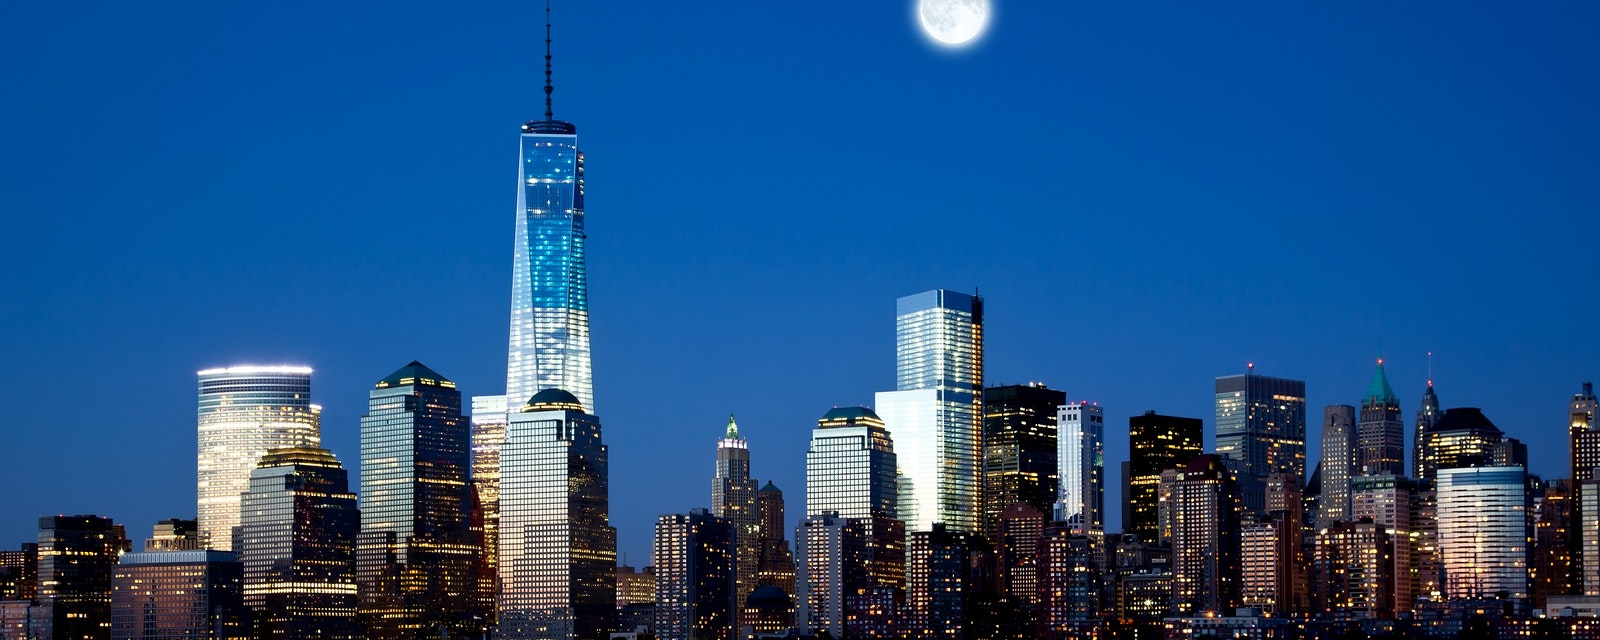 The,New,Freedom,Tower,And,Lower,Manhattan,Skyline,At,Night